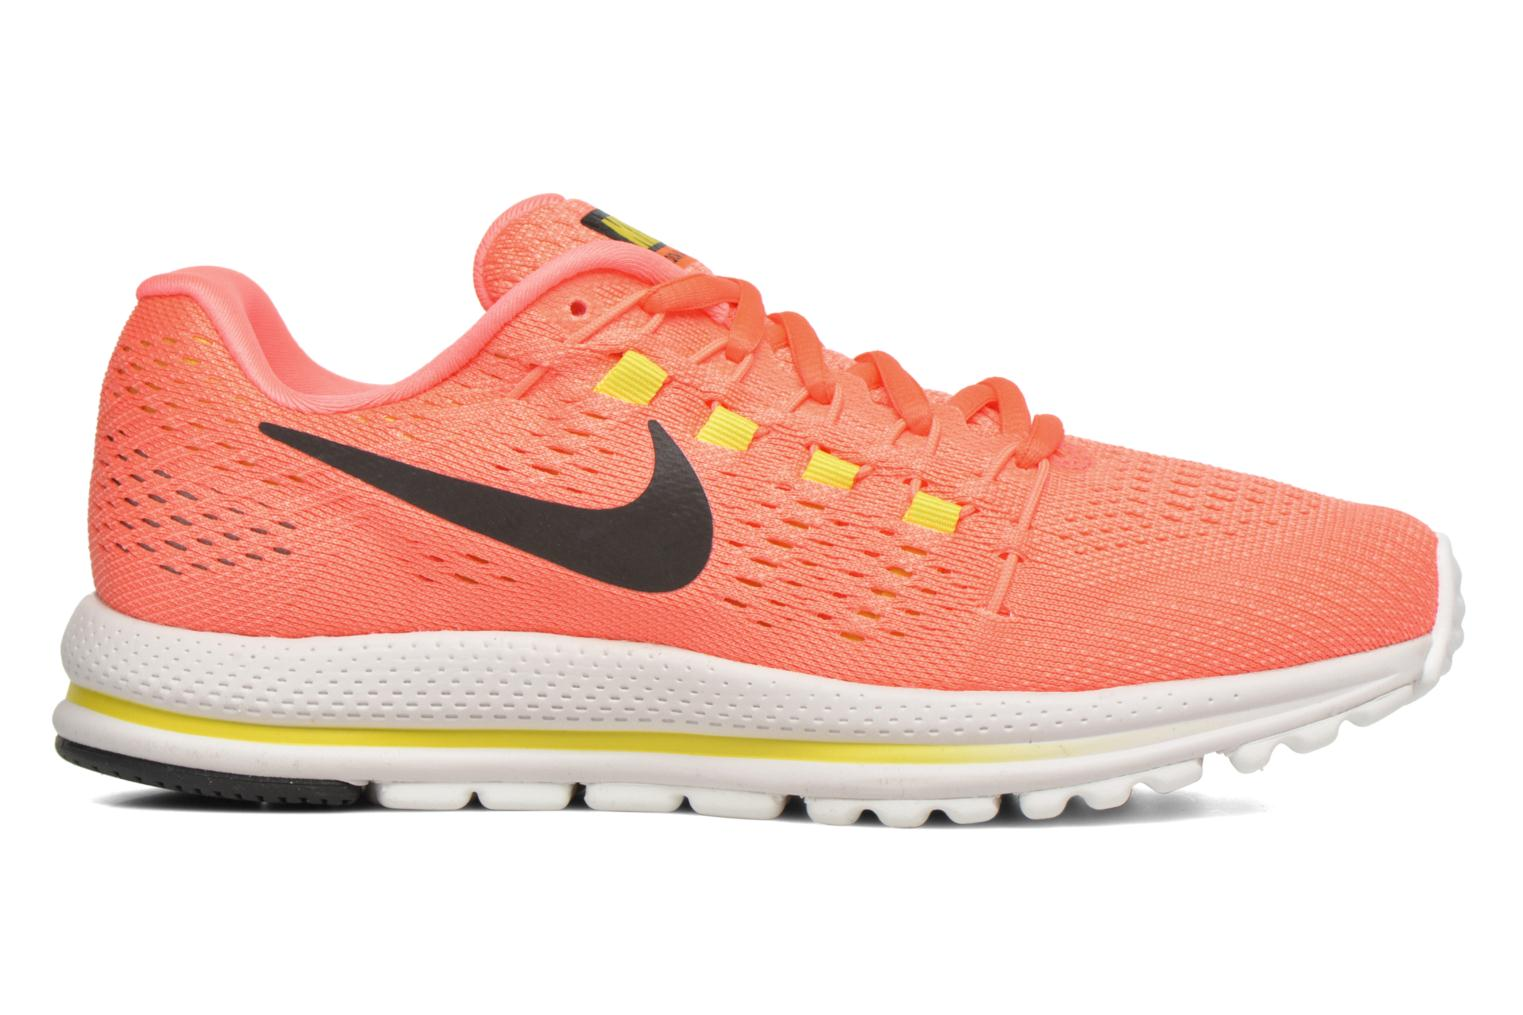 Wmns Nike Air Zoom Vomero 12 Hot Punch/Black-Lava Glow-Electrolime